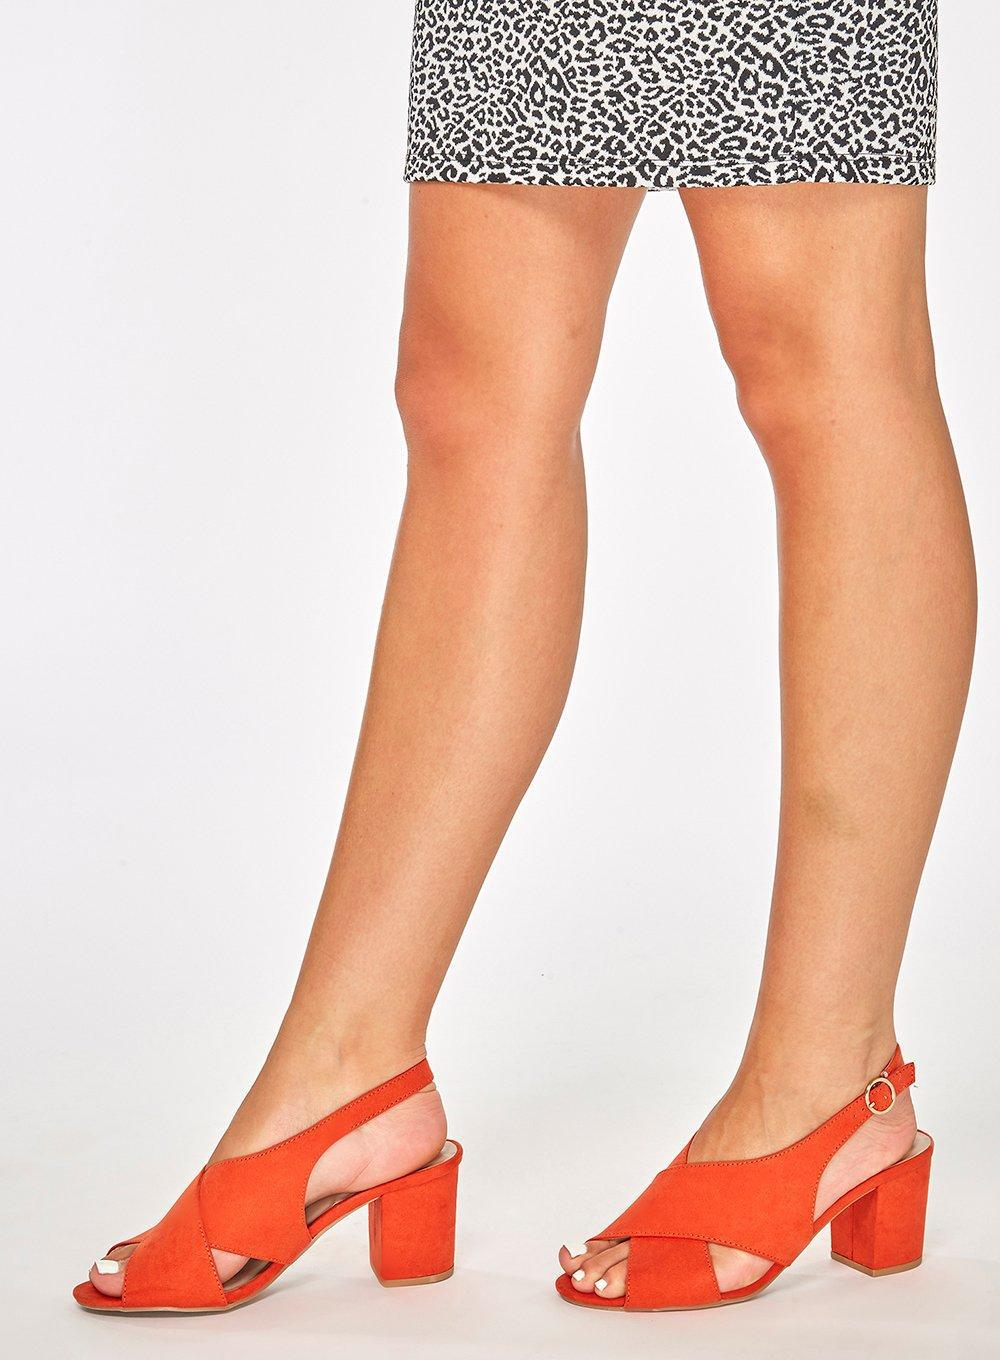 Lyst - Dorothy Perkins Wide Fit  simone  Heeled Sandals in Red 909581b637db